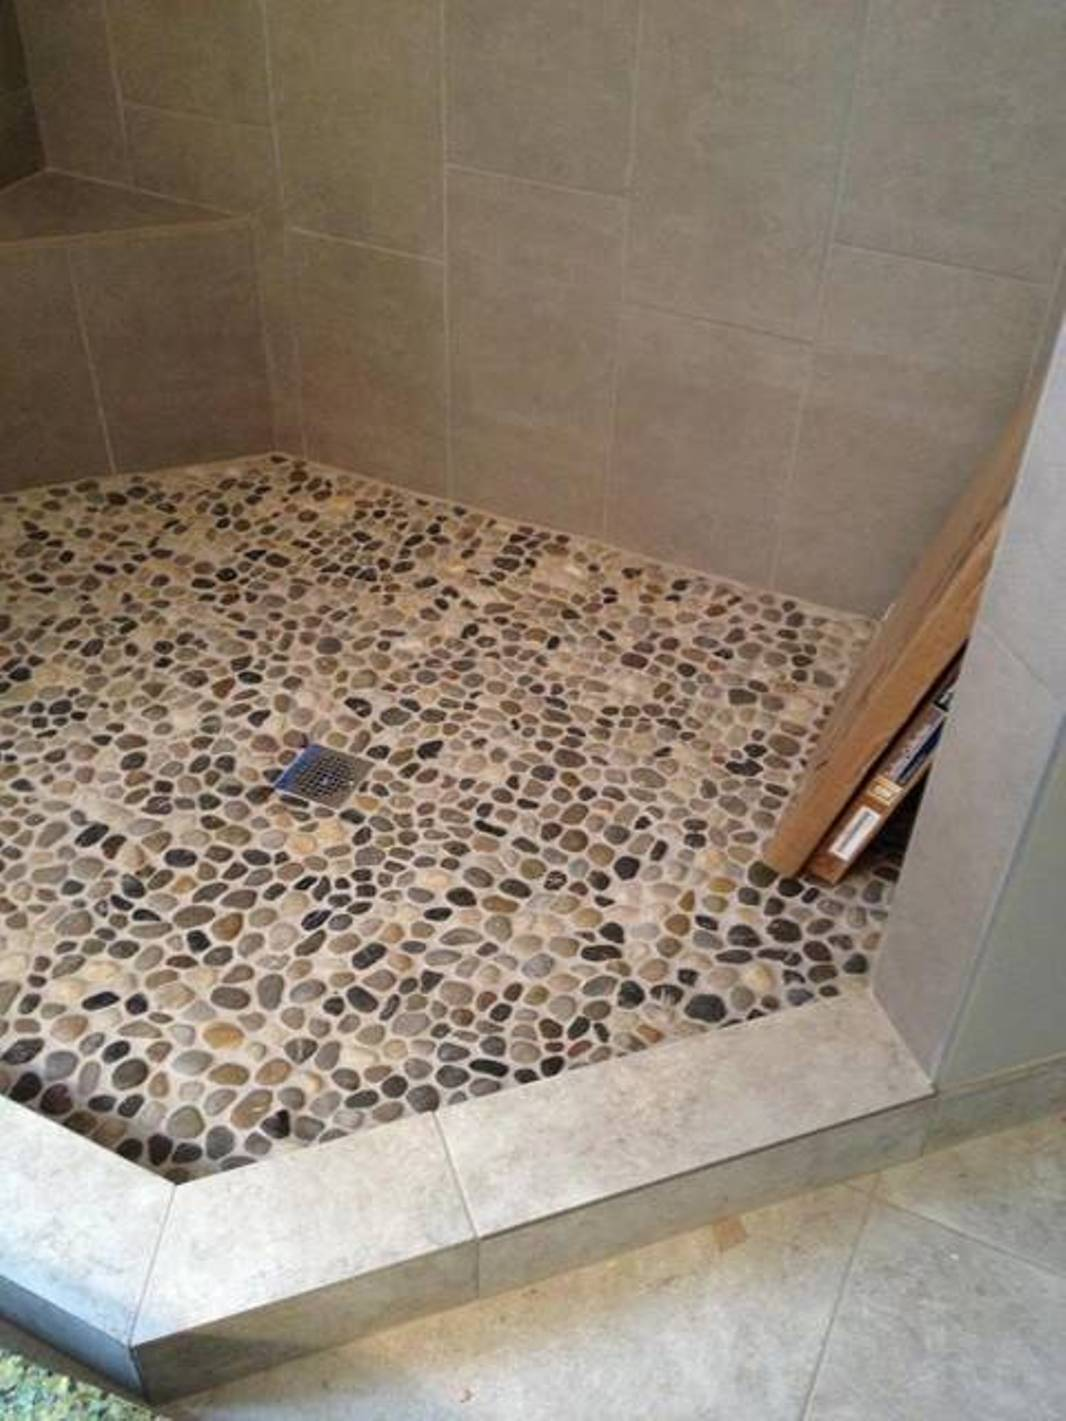 26 nice pictures and ideas of pebble bath tiles 2019